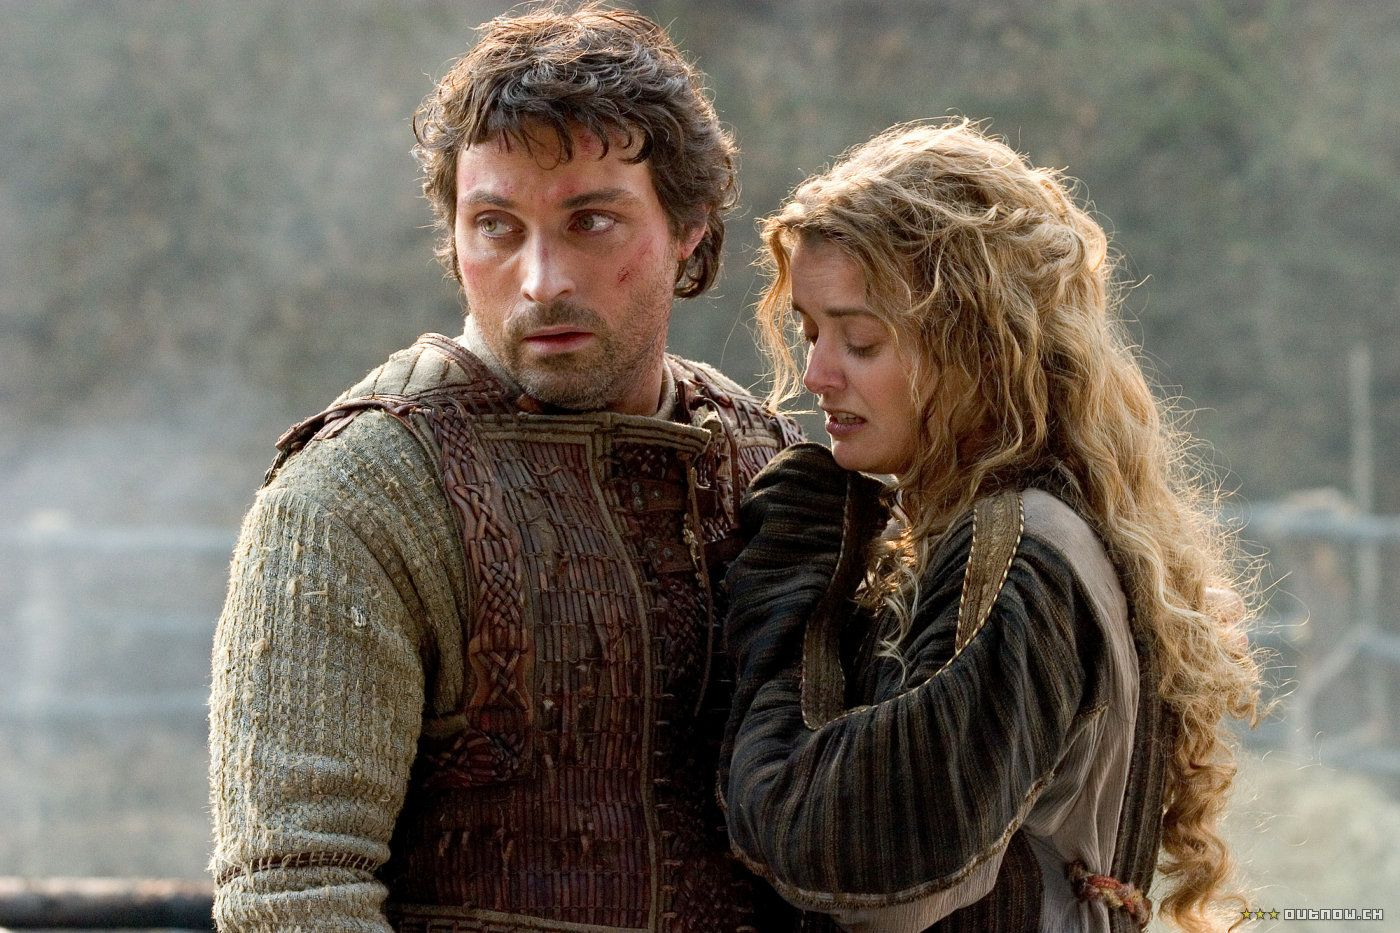 Marke (Rufus Sewell) and his betrothed wife Isolde (Sophia Myles) in Tristan + Isolde (2006) poster